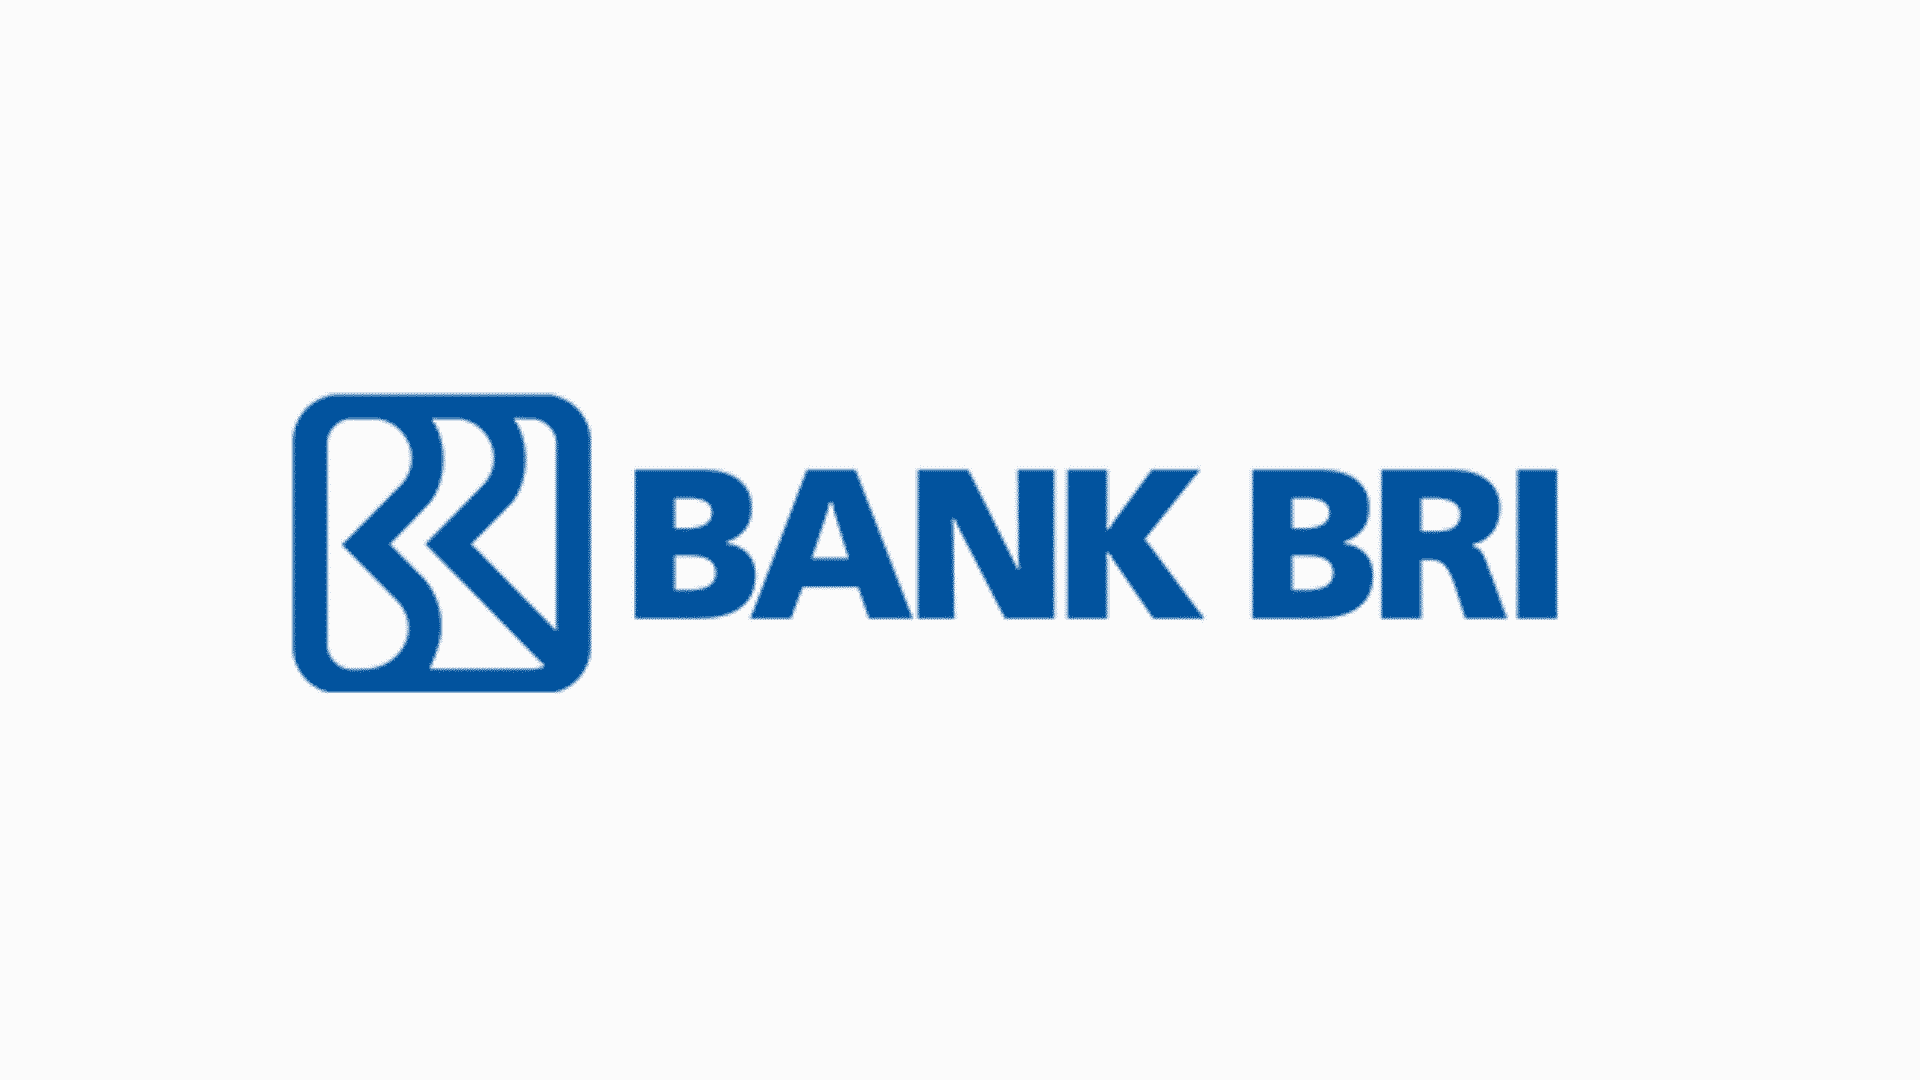 cs-bank-bri